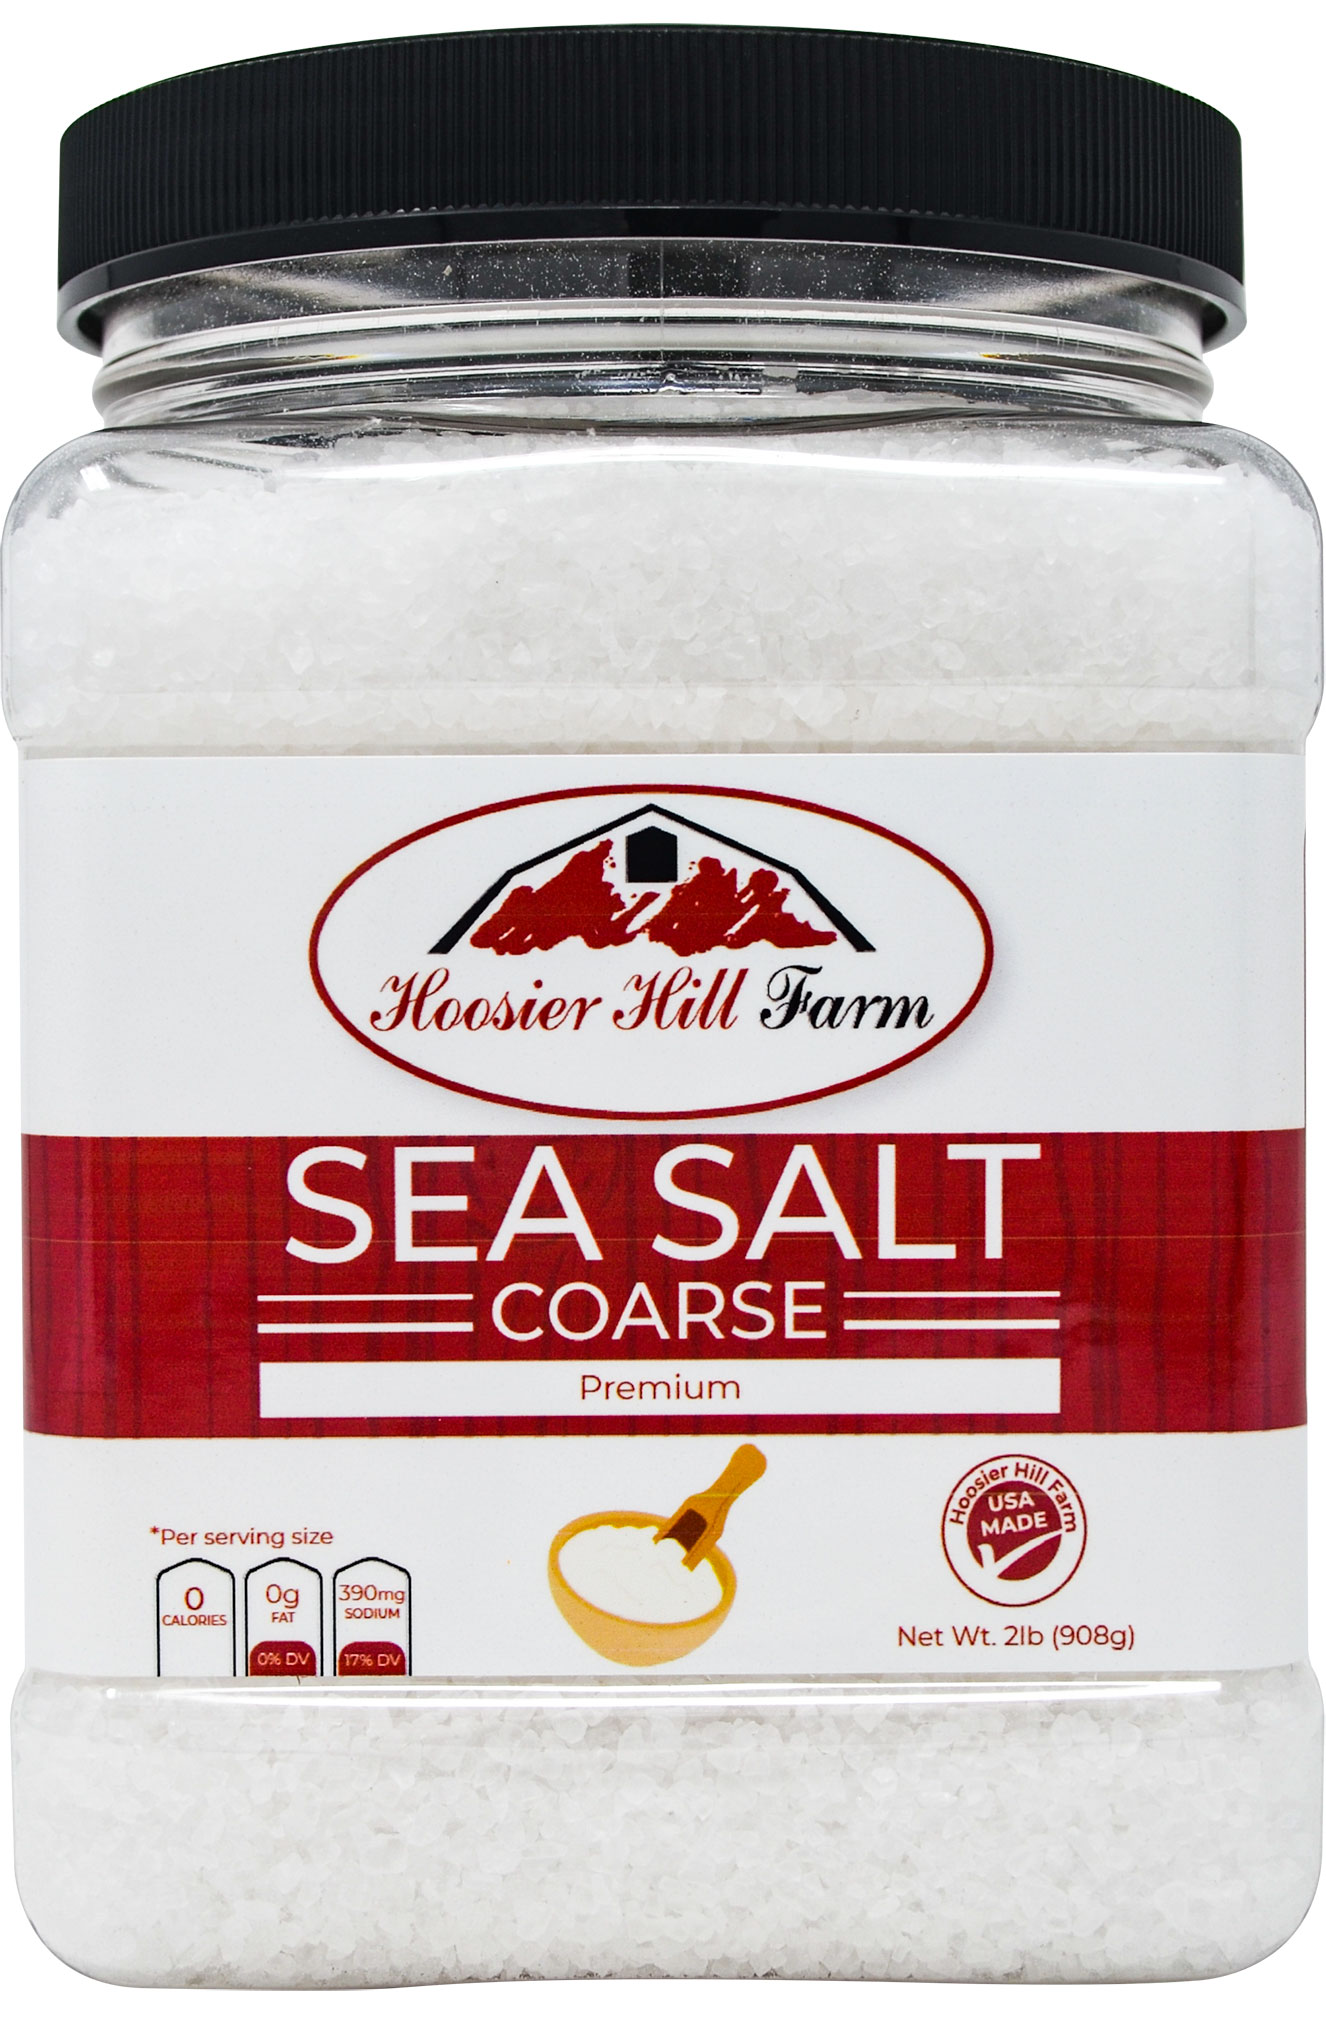 Hoosier Hill Farm Coarse Sea Salt, 2 lb. jar